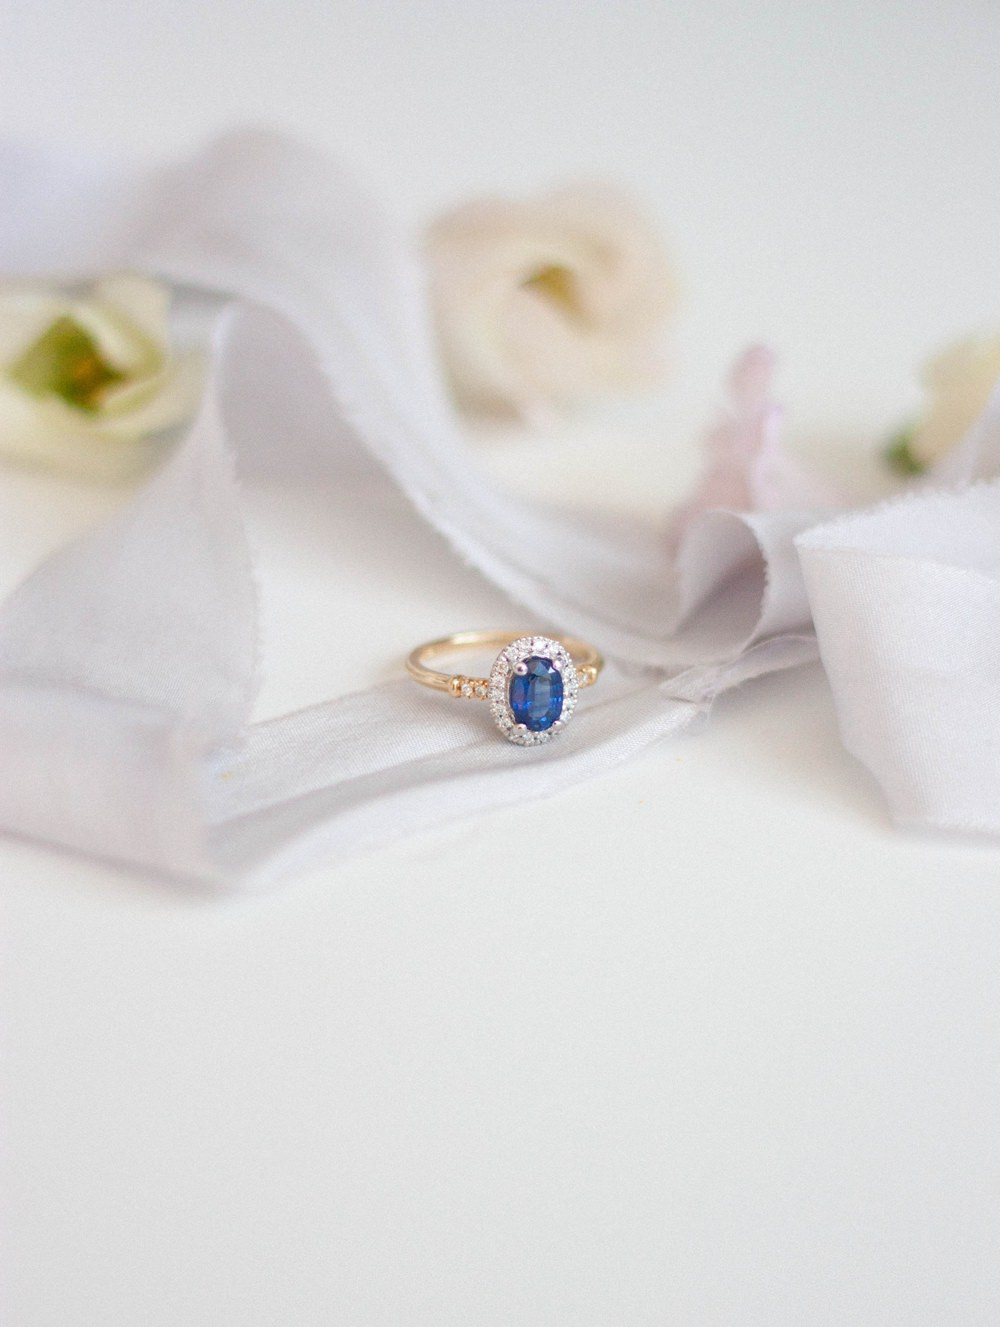 Alternative Engagement Rings Coloured Gem Wedding Vintage Yellow Gold Halo Sapphire Blue Silk Ribbon Diamond